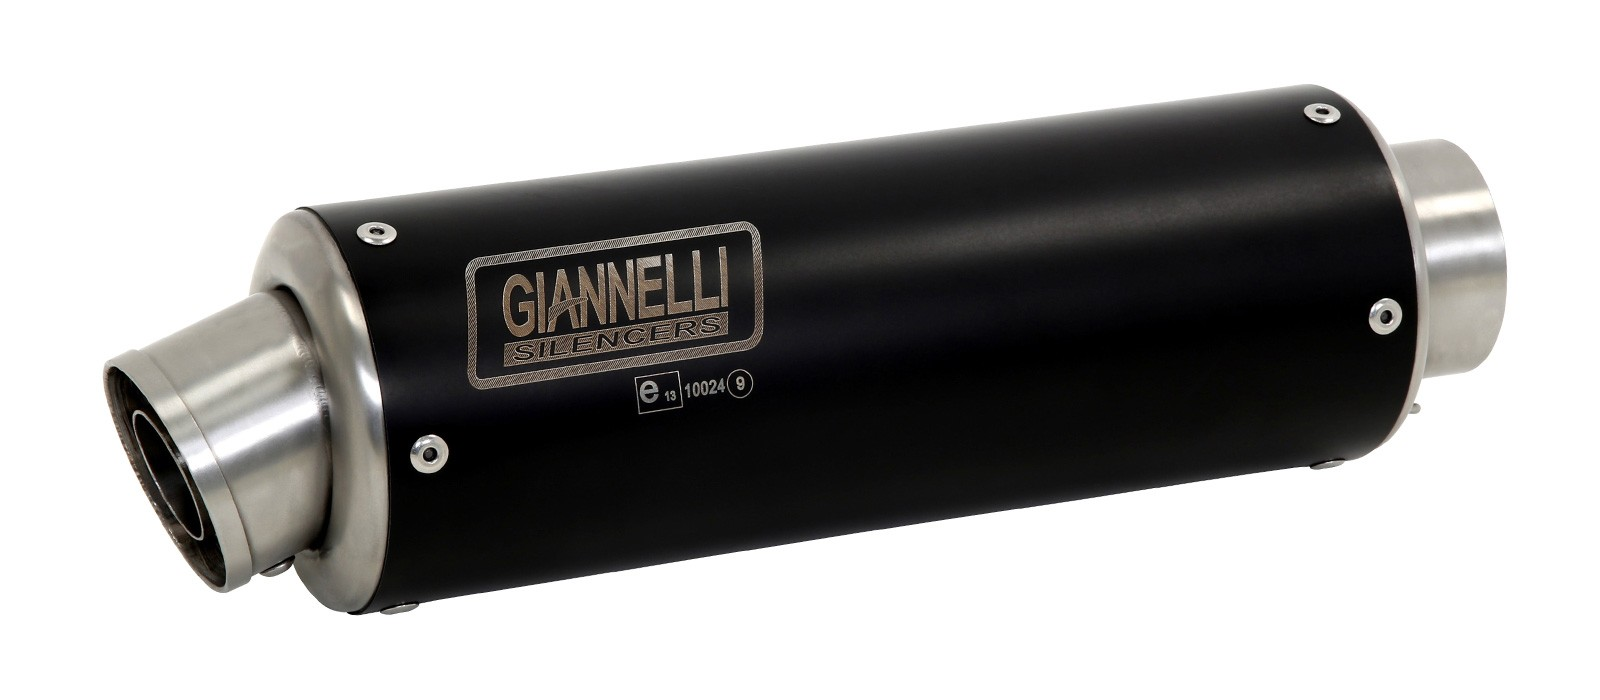 ESCAPES GIANNELLI YAMAHA - Slip-on nicrom black X-PRO con racor Yamaha MT-10 Giannelli 73578XP -